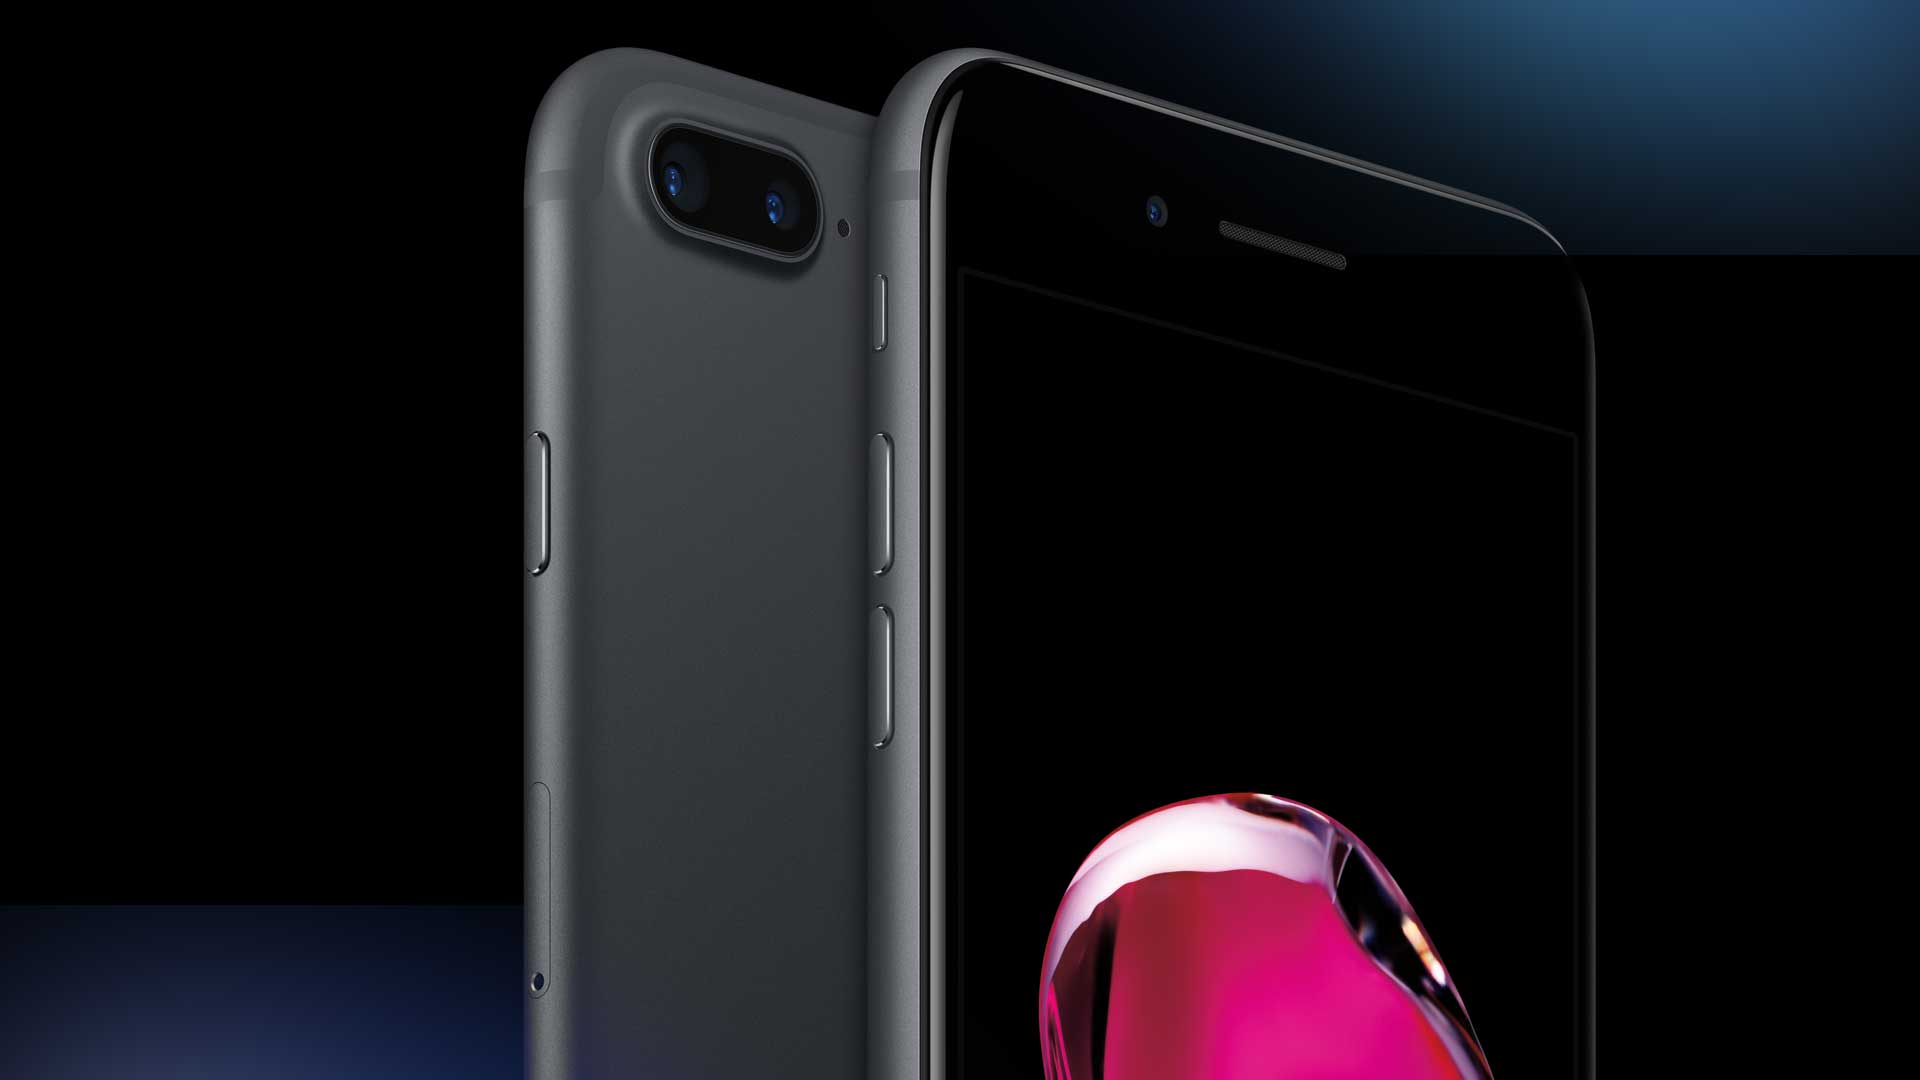 Photo of iPhone 7 Most Popular iPhone Ever Among T-Mobile Customers